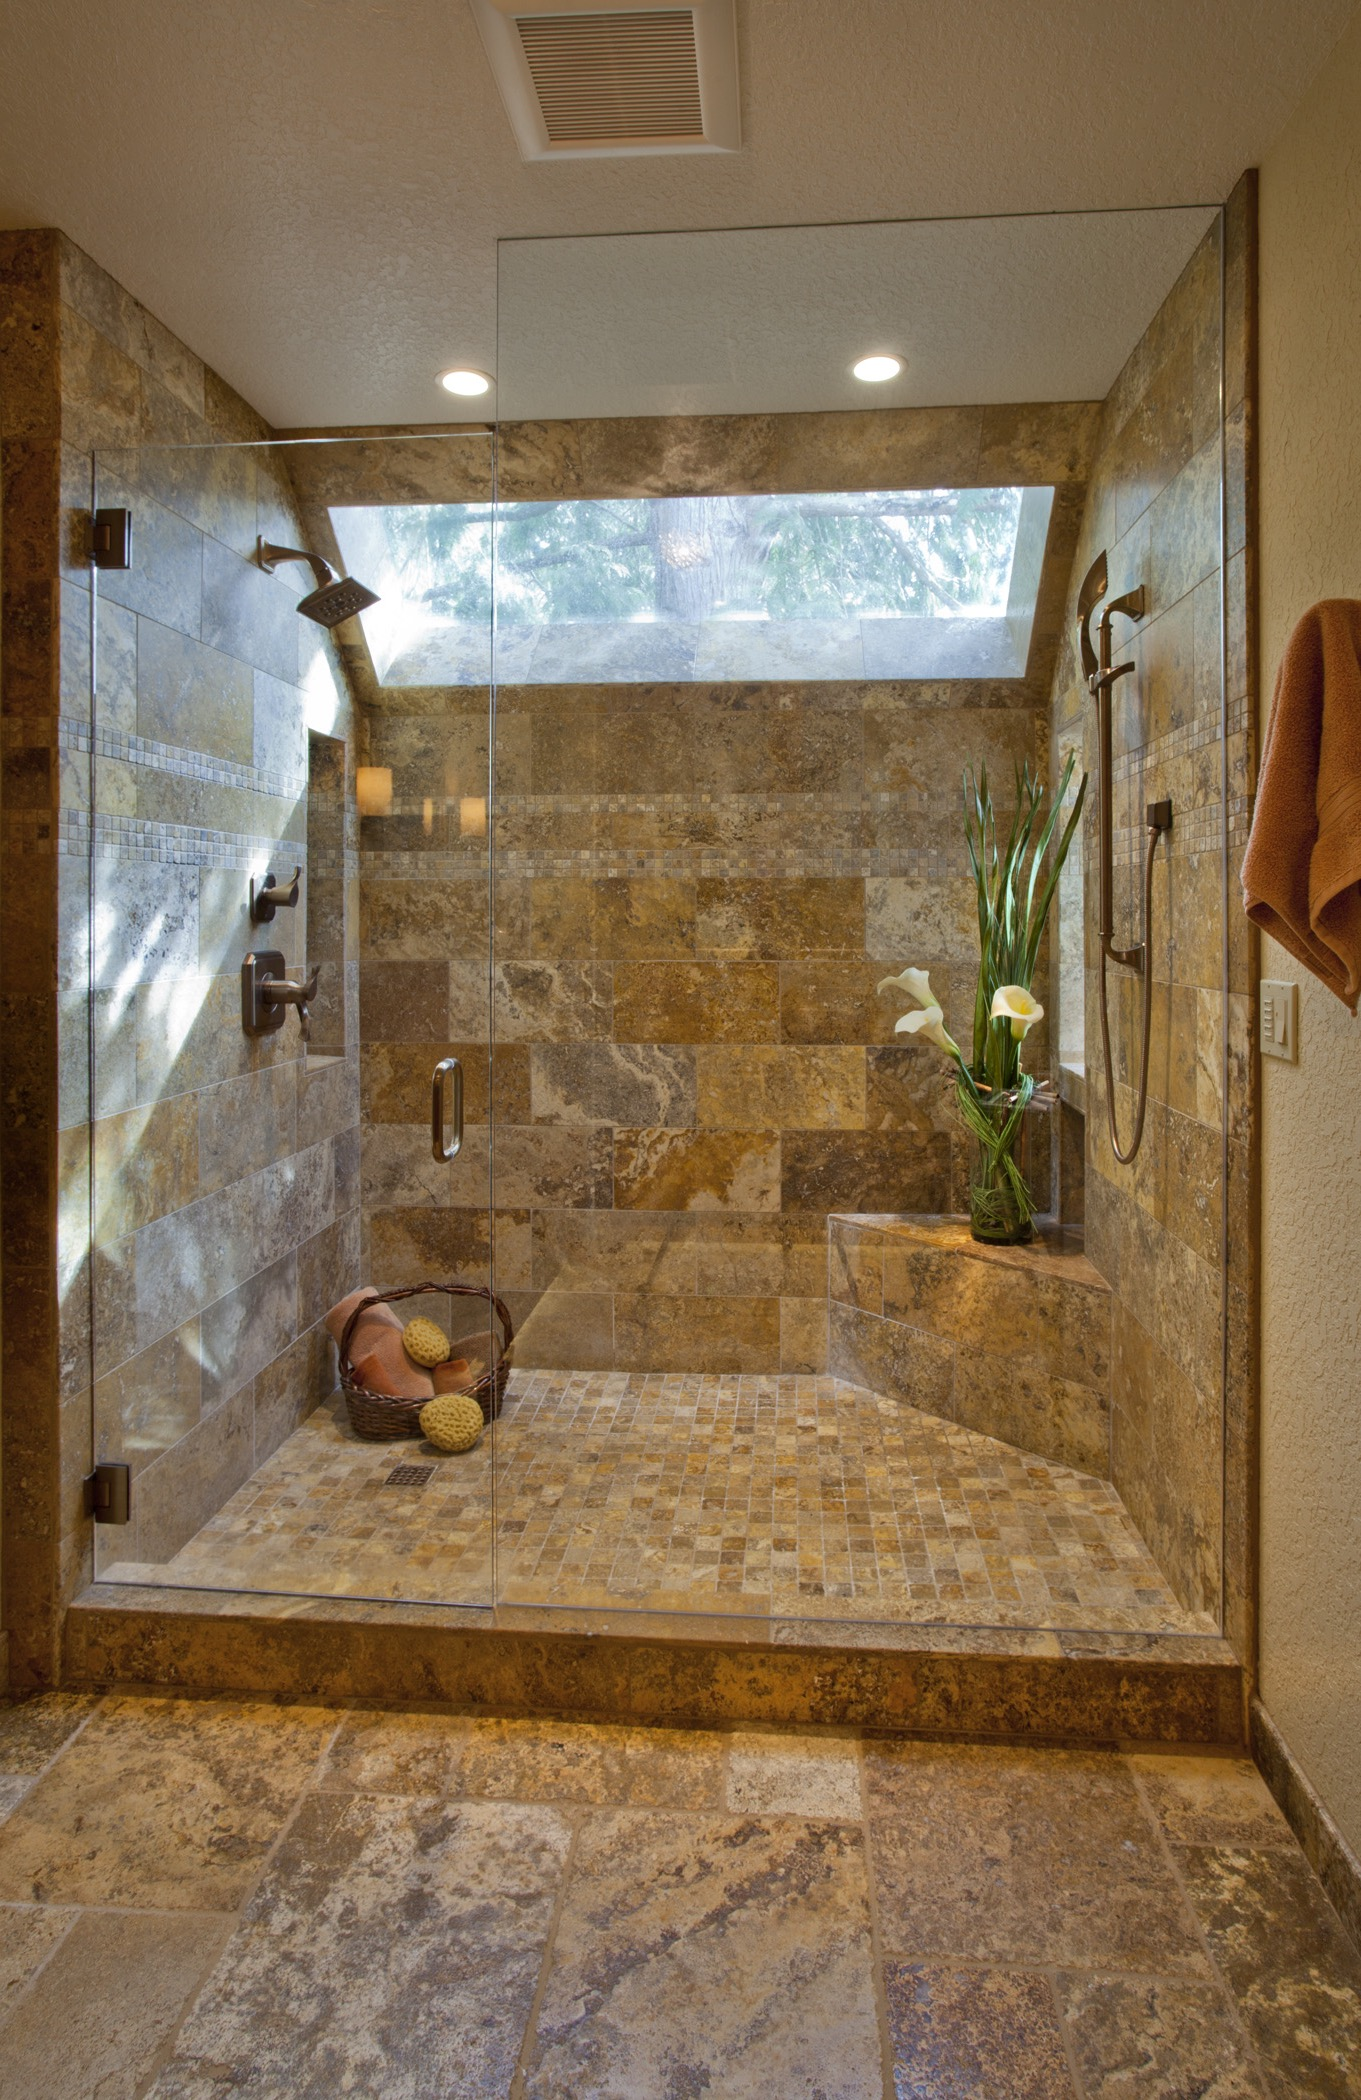 Elegant Walk In Shower With Tile Walls And Skylight (Image 11 of 29)